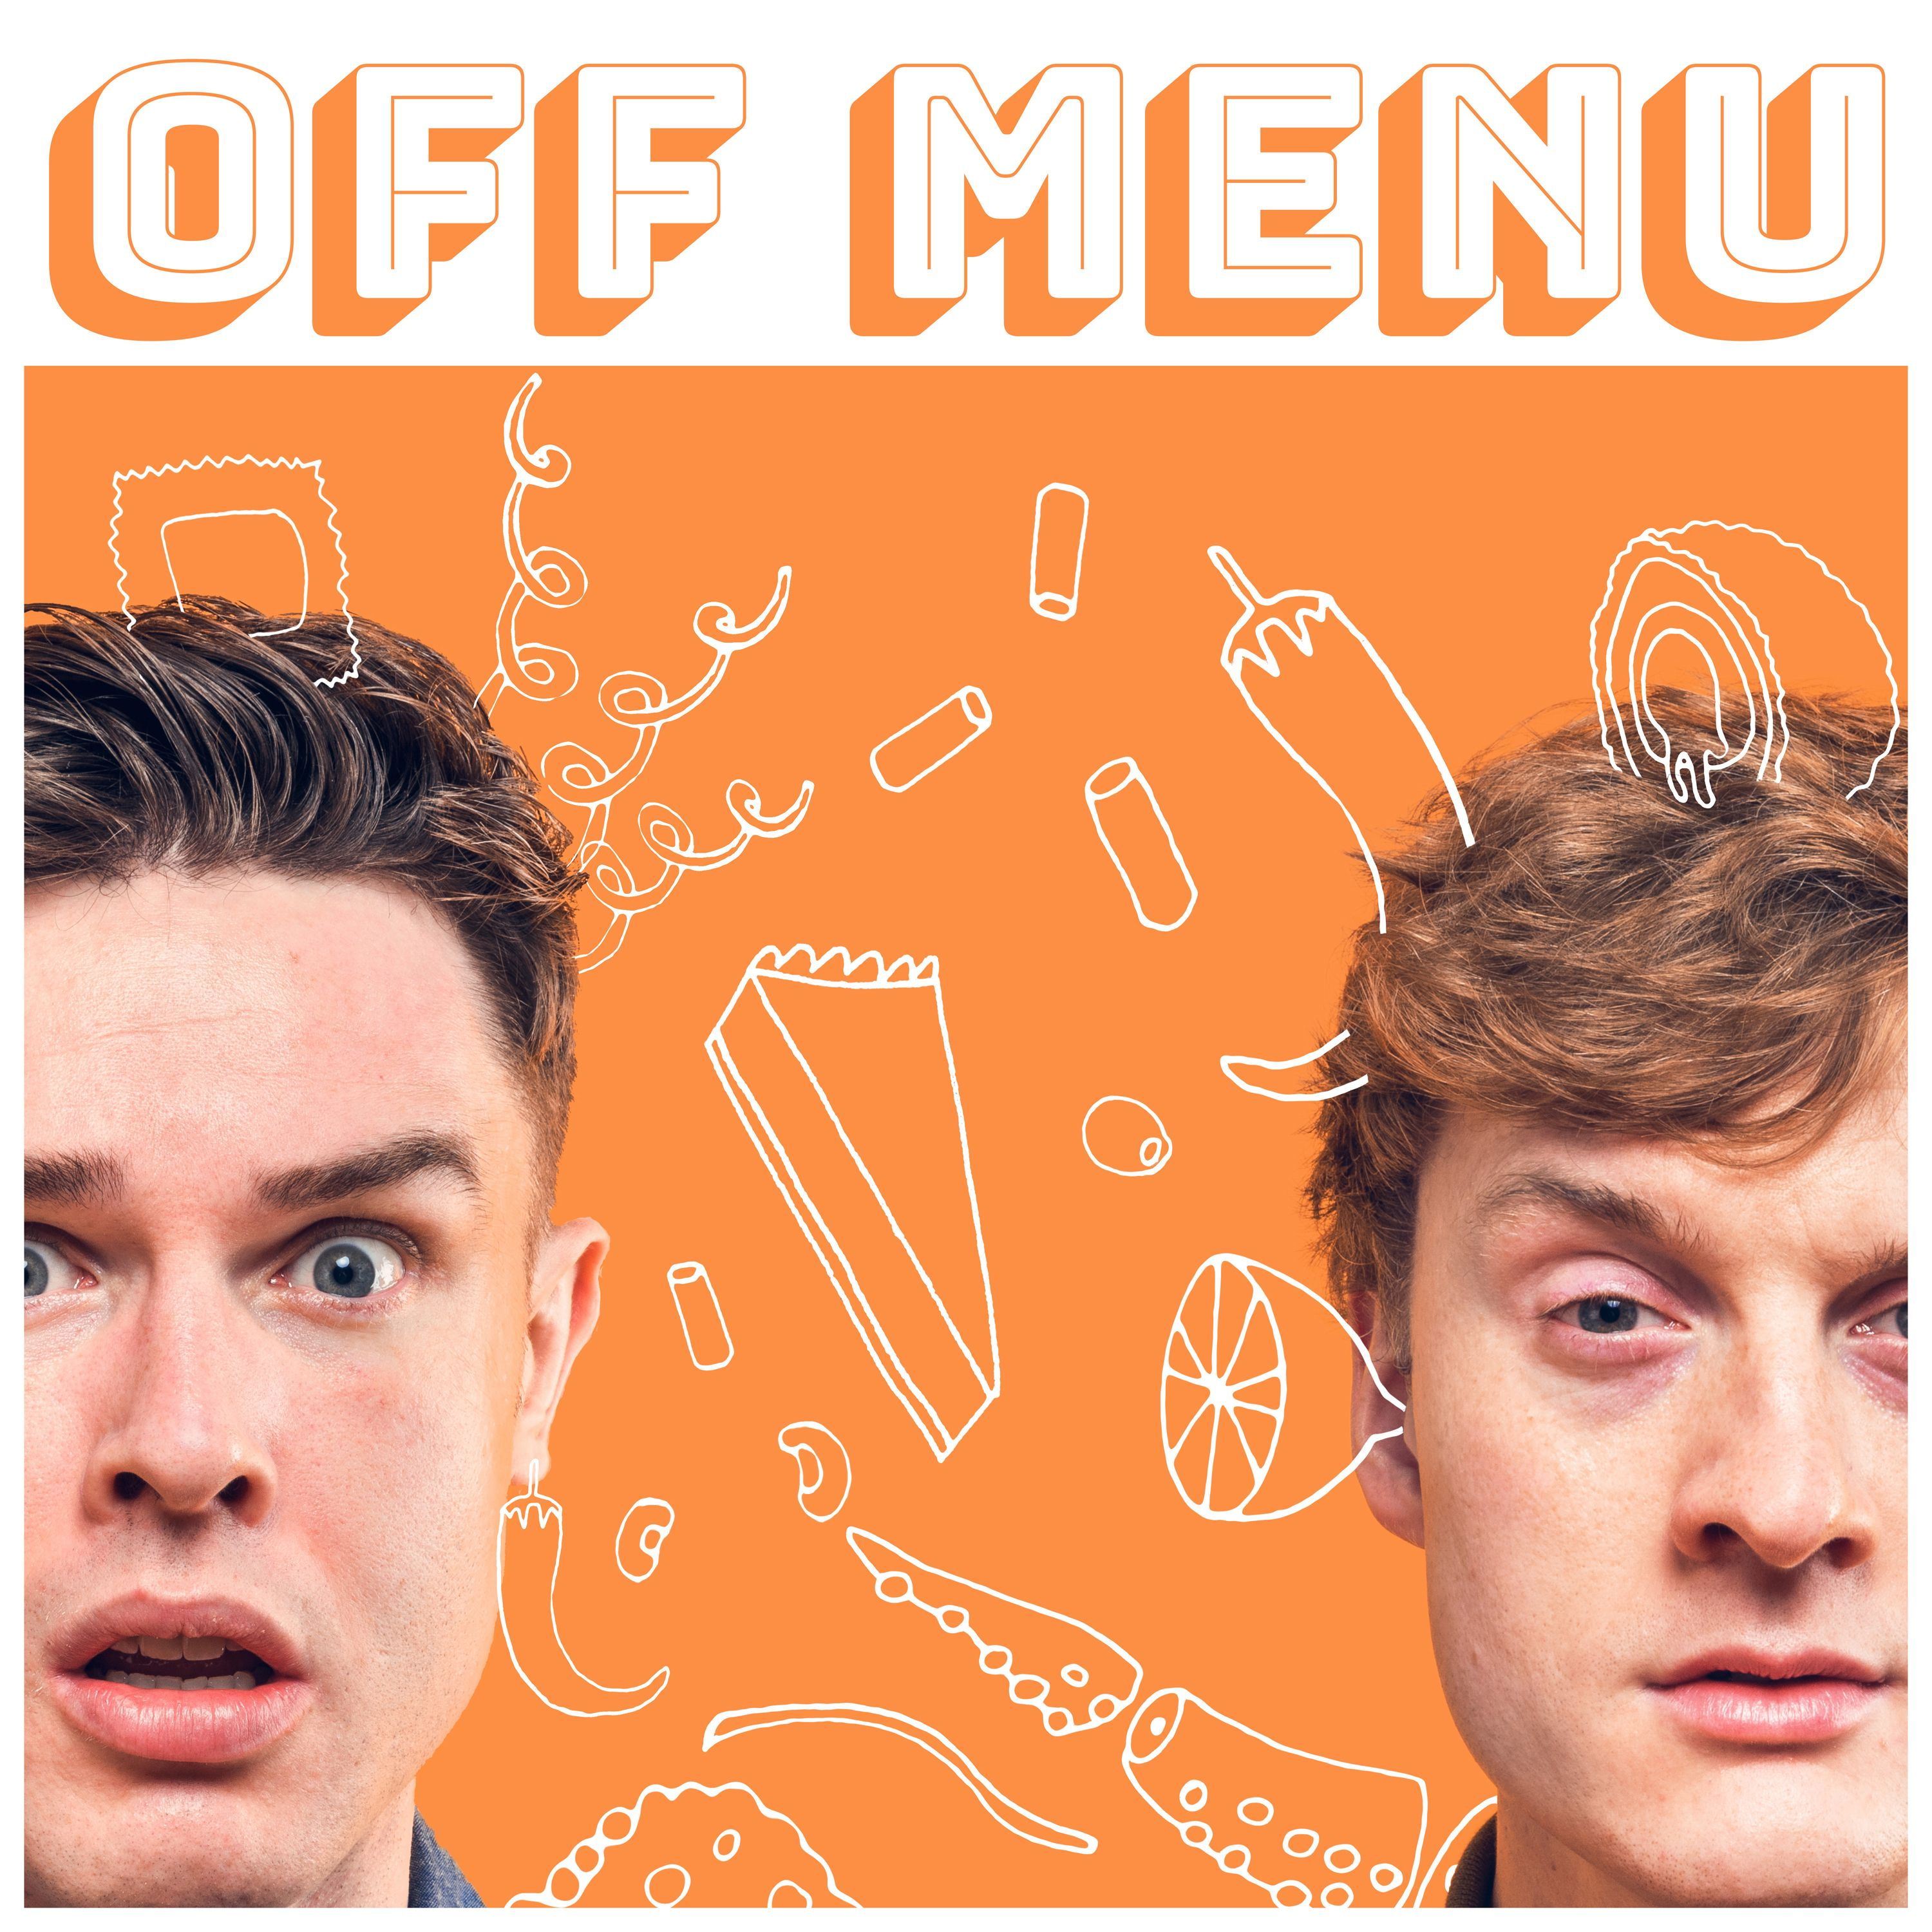 Announcement! Off Menu live show in London - on sale this Friday